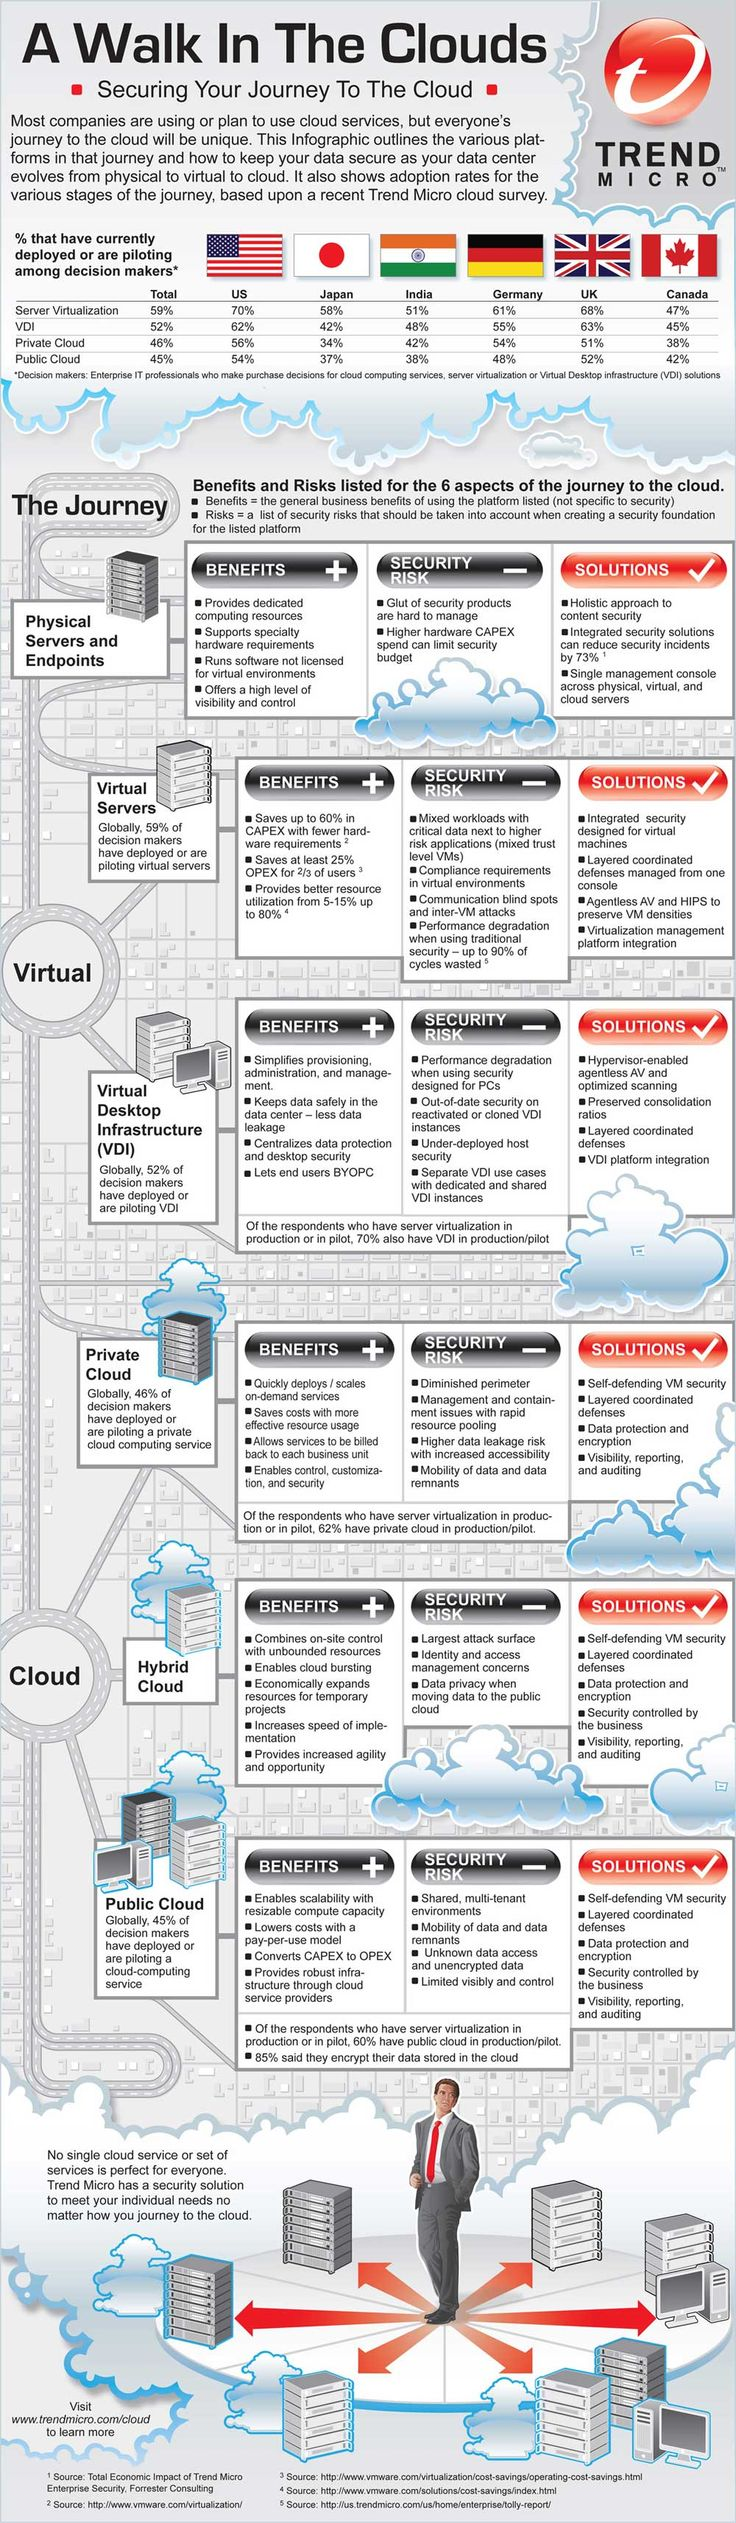 #A Walk in the Clouds - Securing Your Journey To The Cloud http://ultimatesoftwaredownload.com